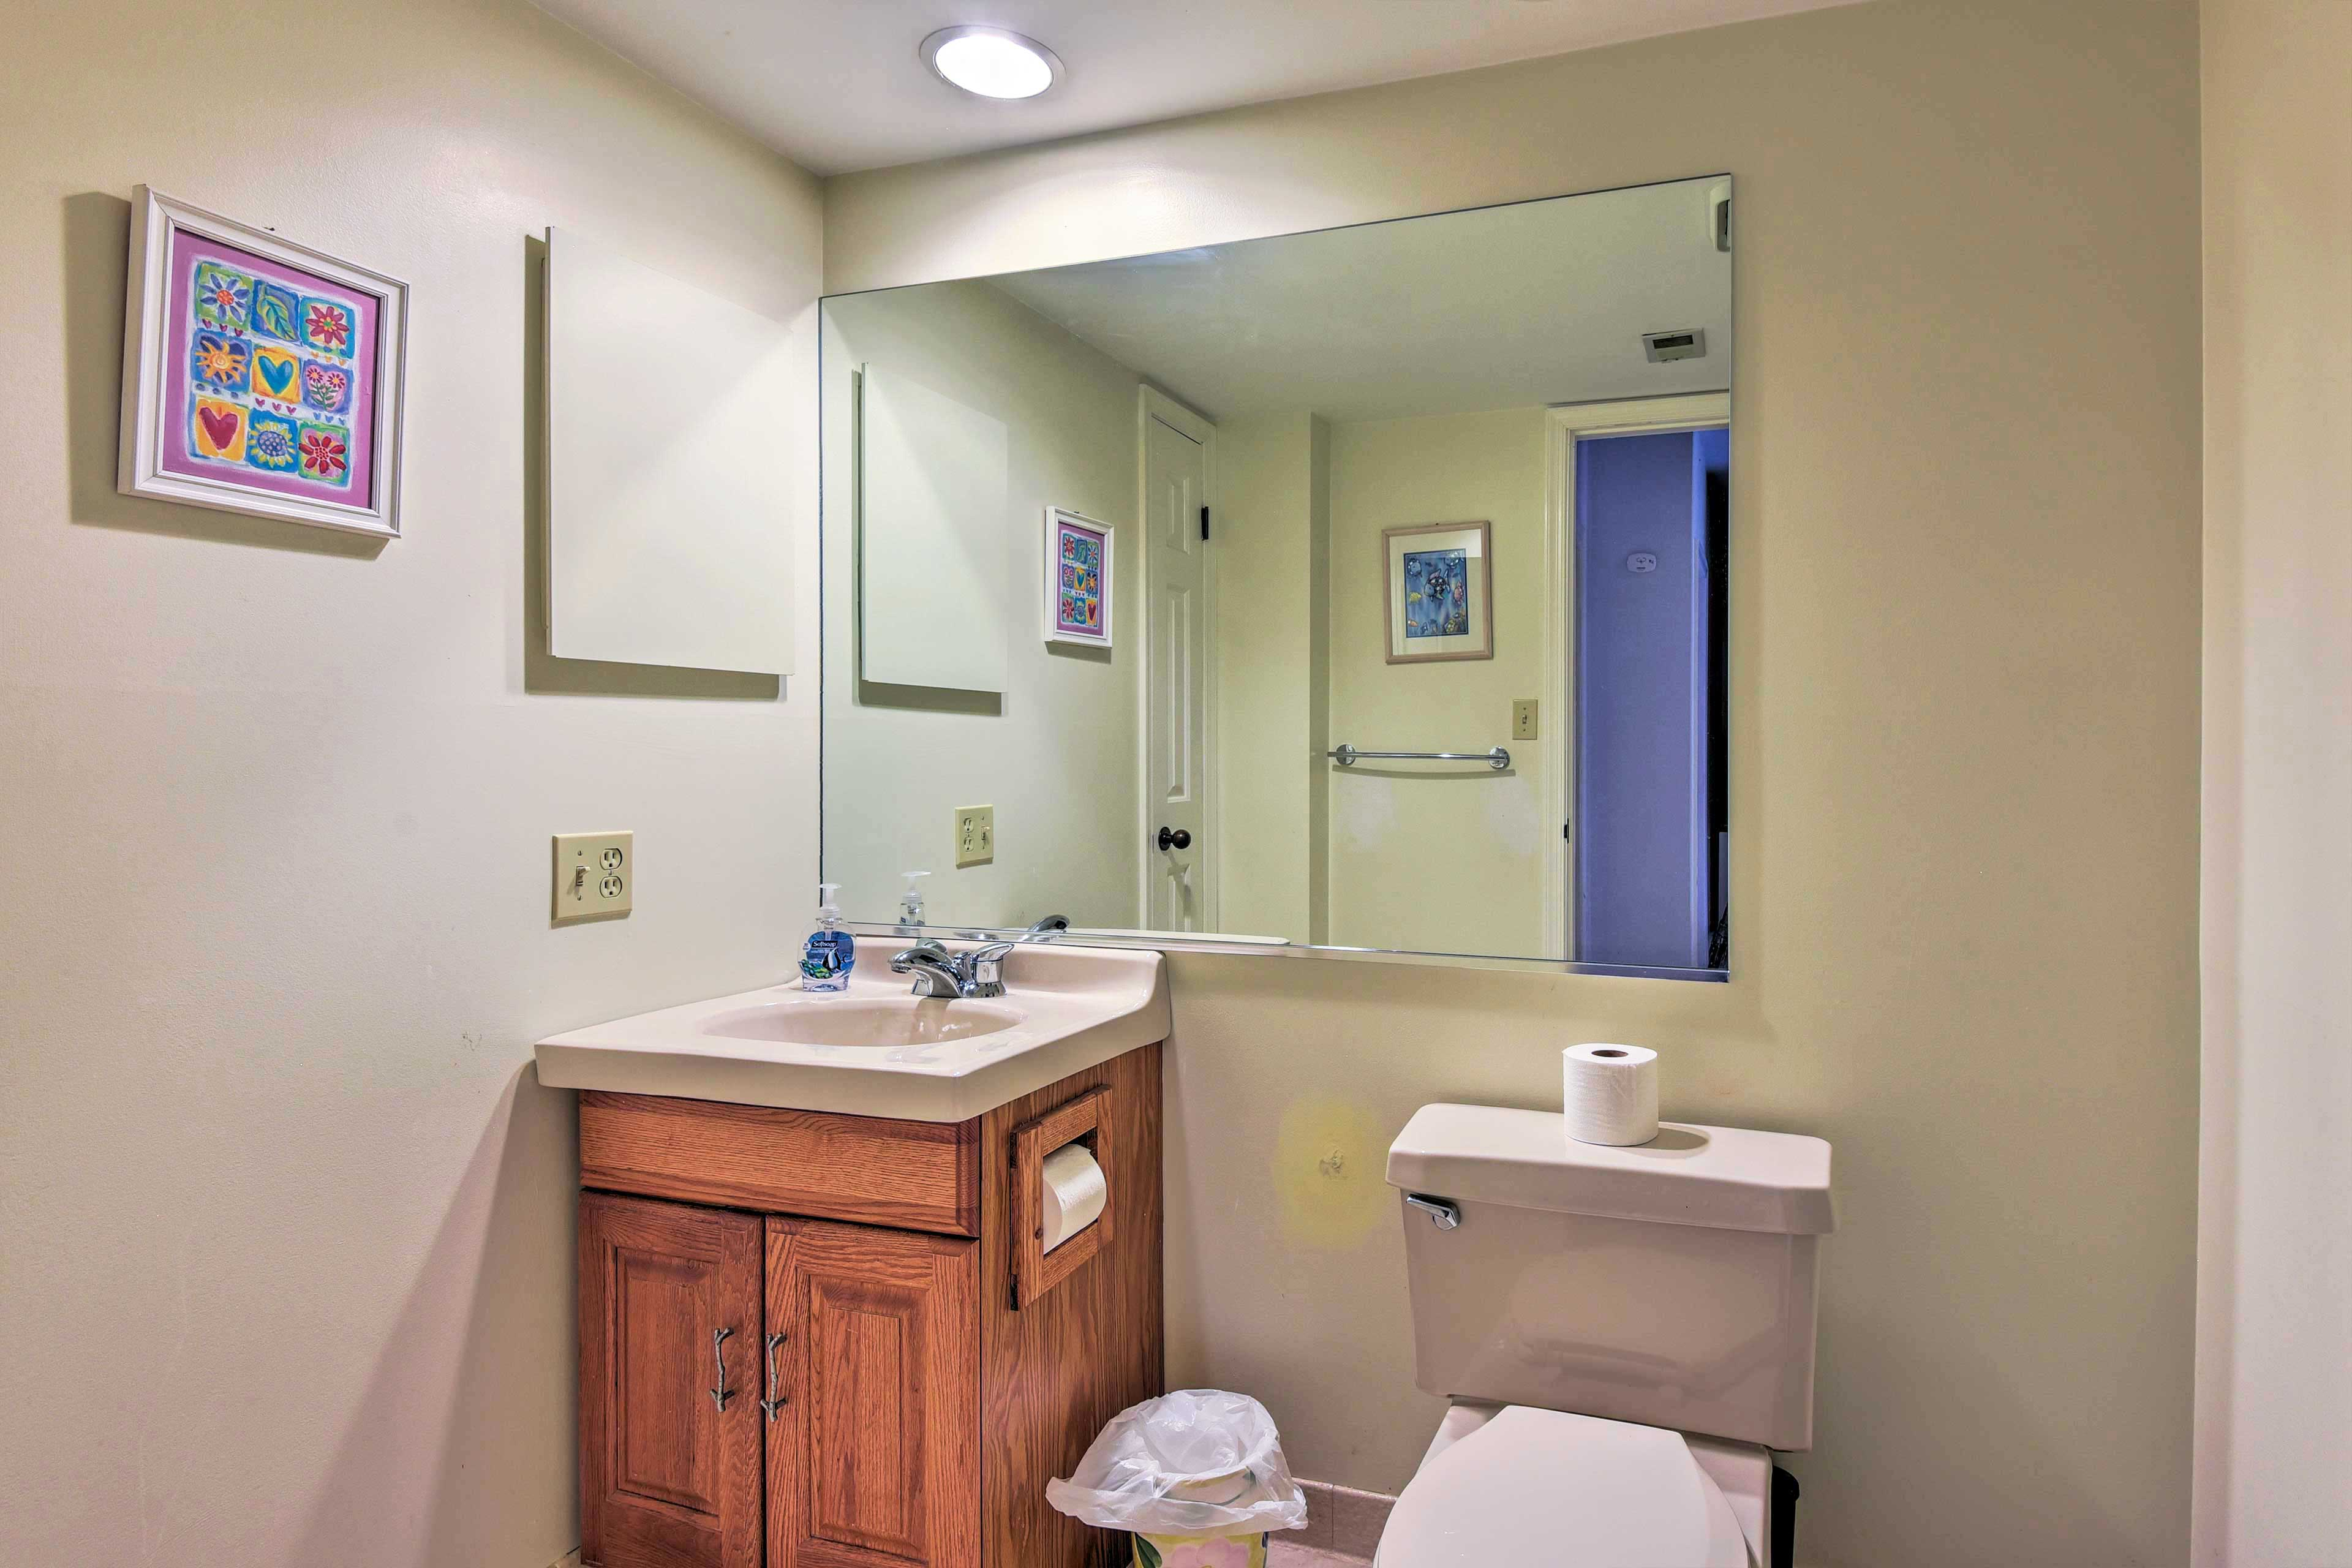 Easily freshen up in one of 3 bathrooms!